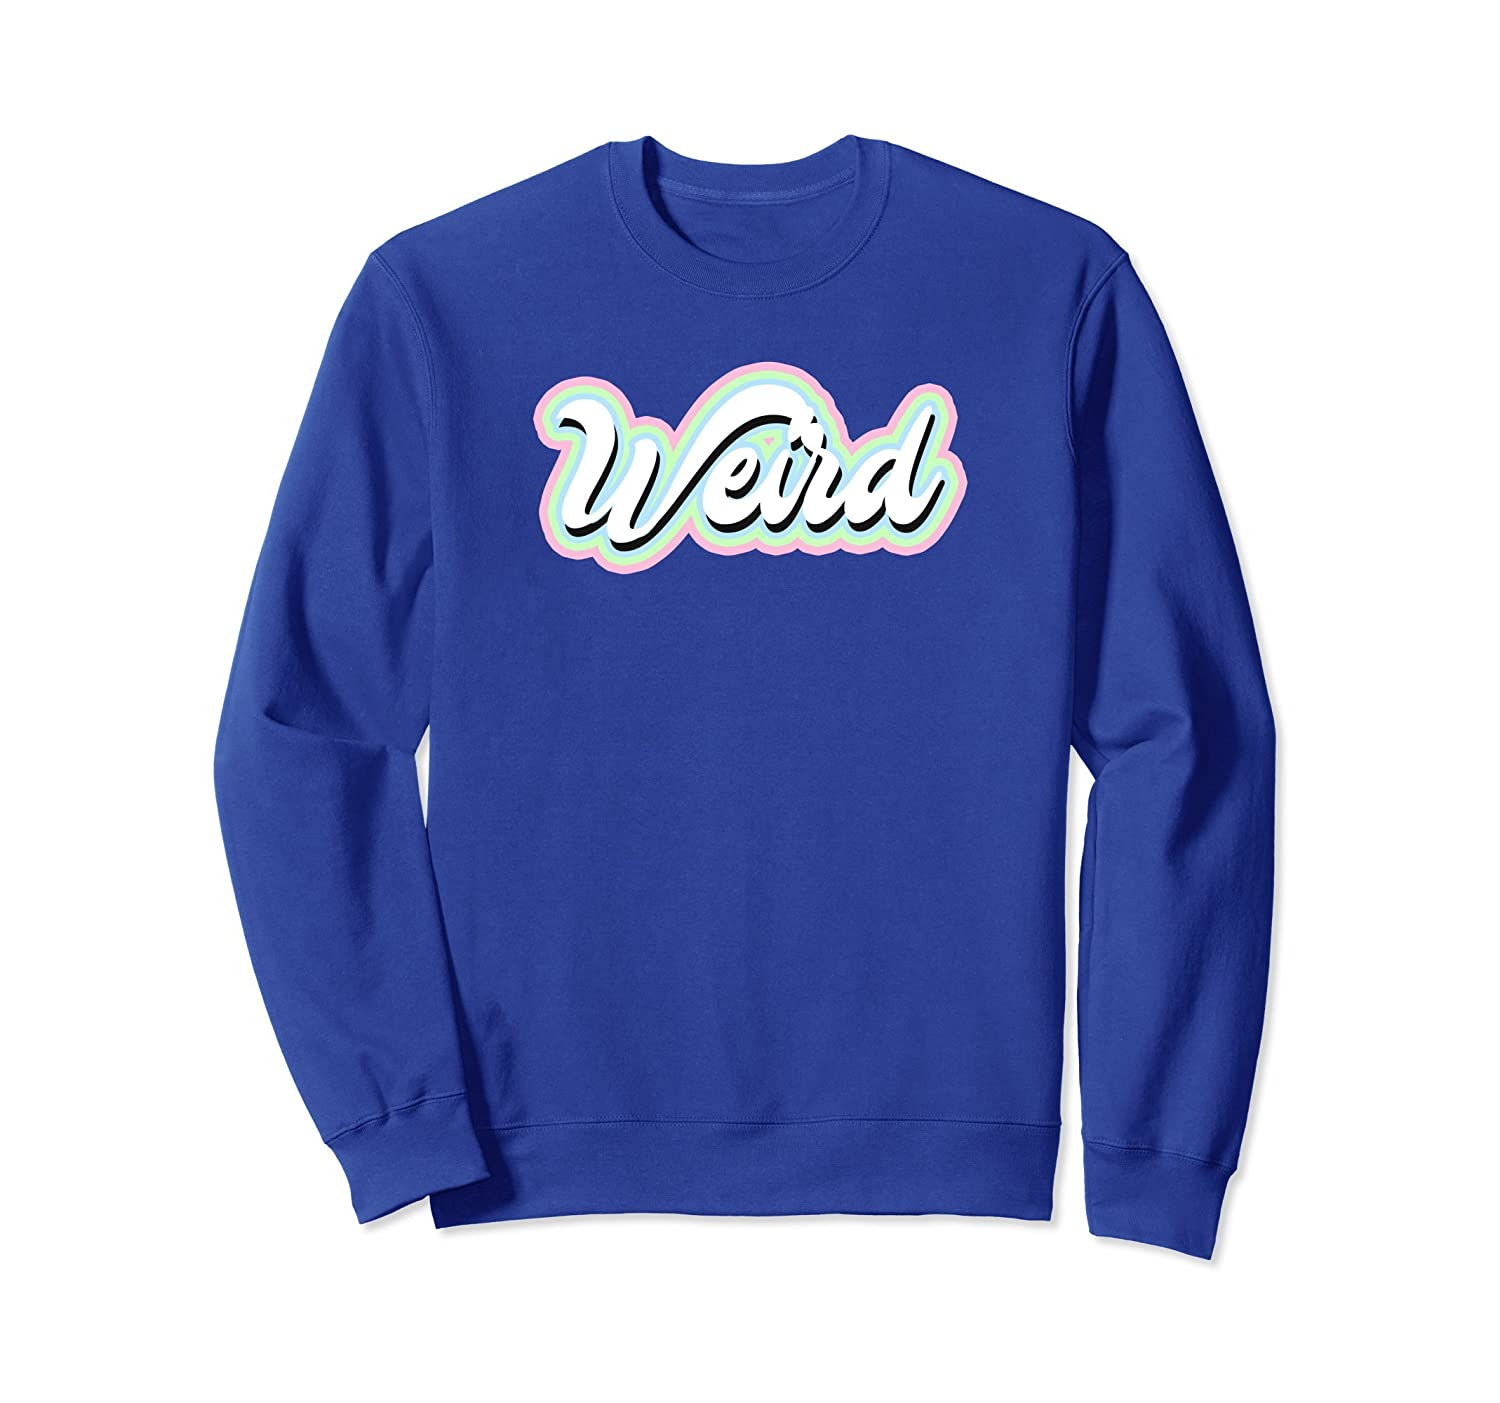 Weird Goth Sweatshirts, Aesthetic Clothing For Girls-mt